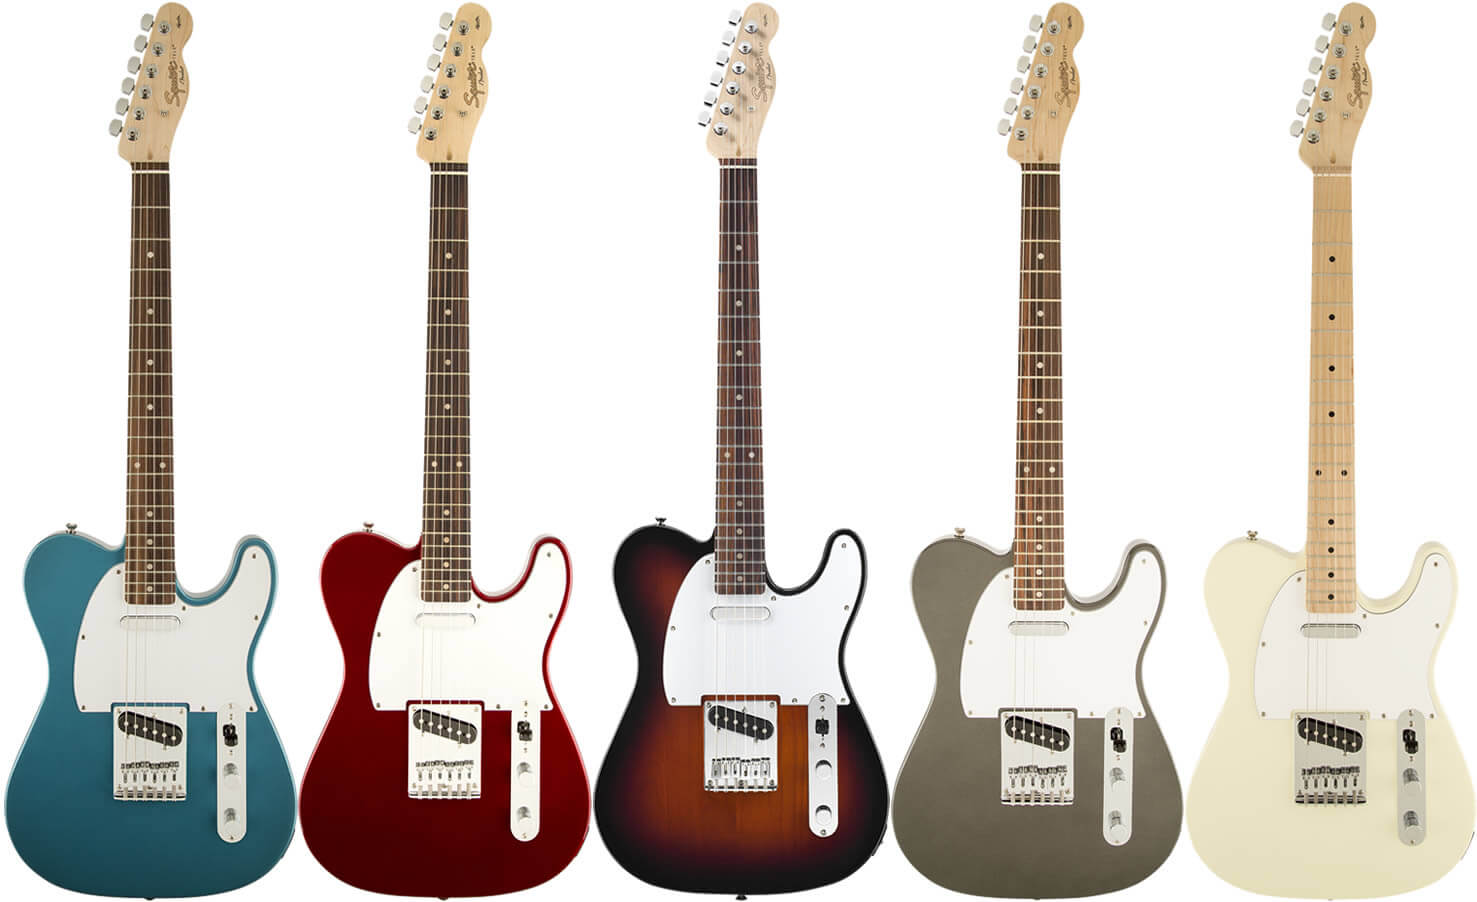 Affinity Series Telecaster